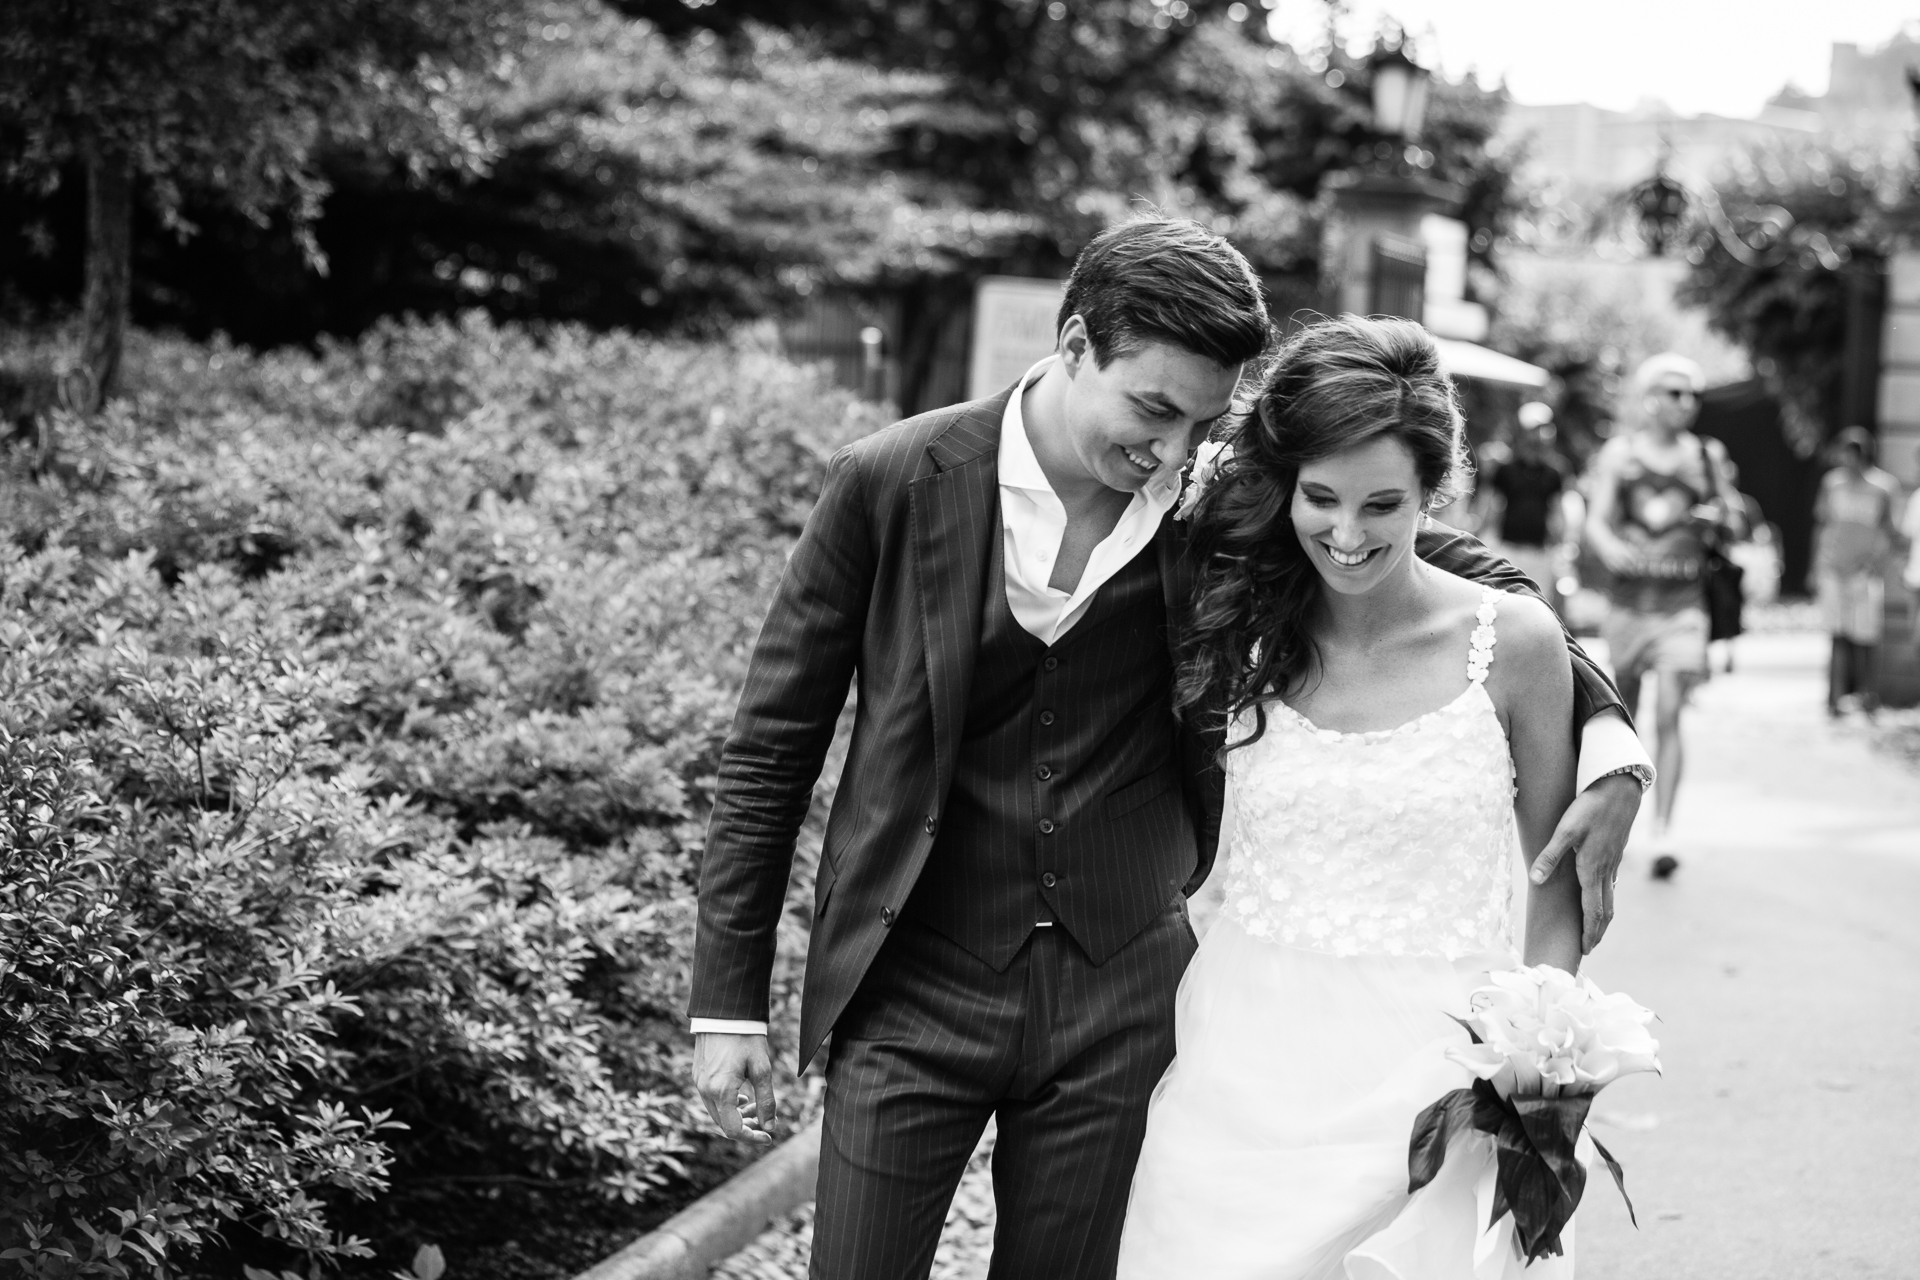 Switzerland Elopement Photography | After the ceremony, the bride and groom head outside for a walk. The groom wraps his arm around the bride's shoulder and they both smile as they go